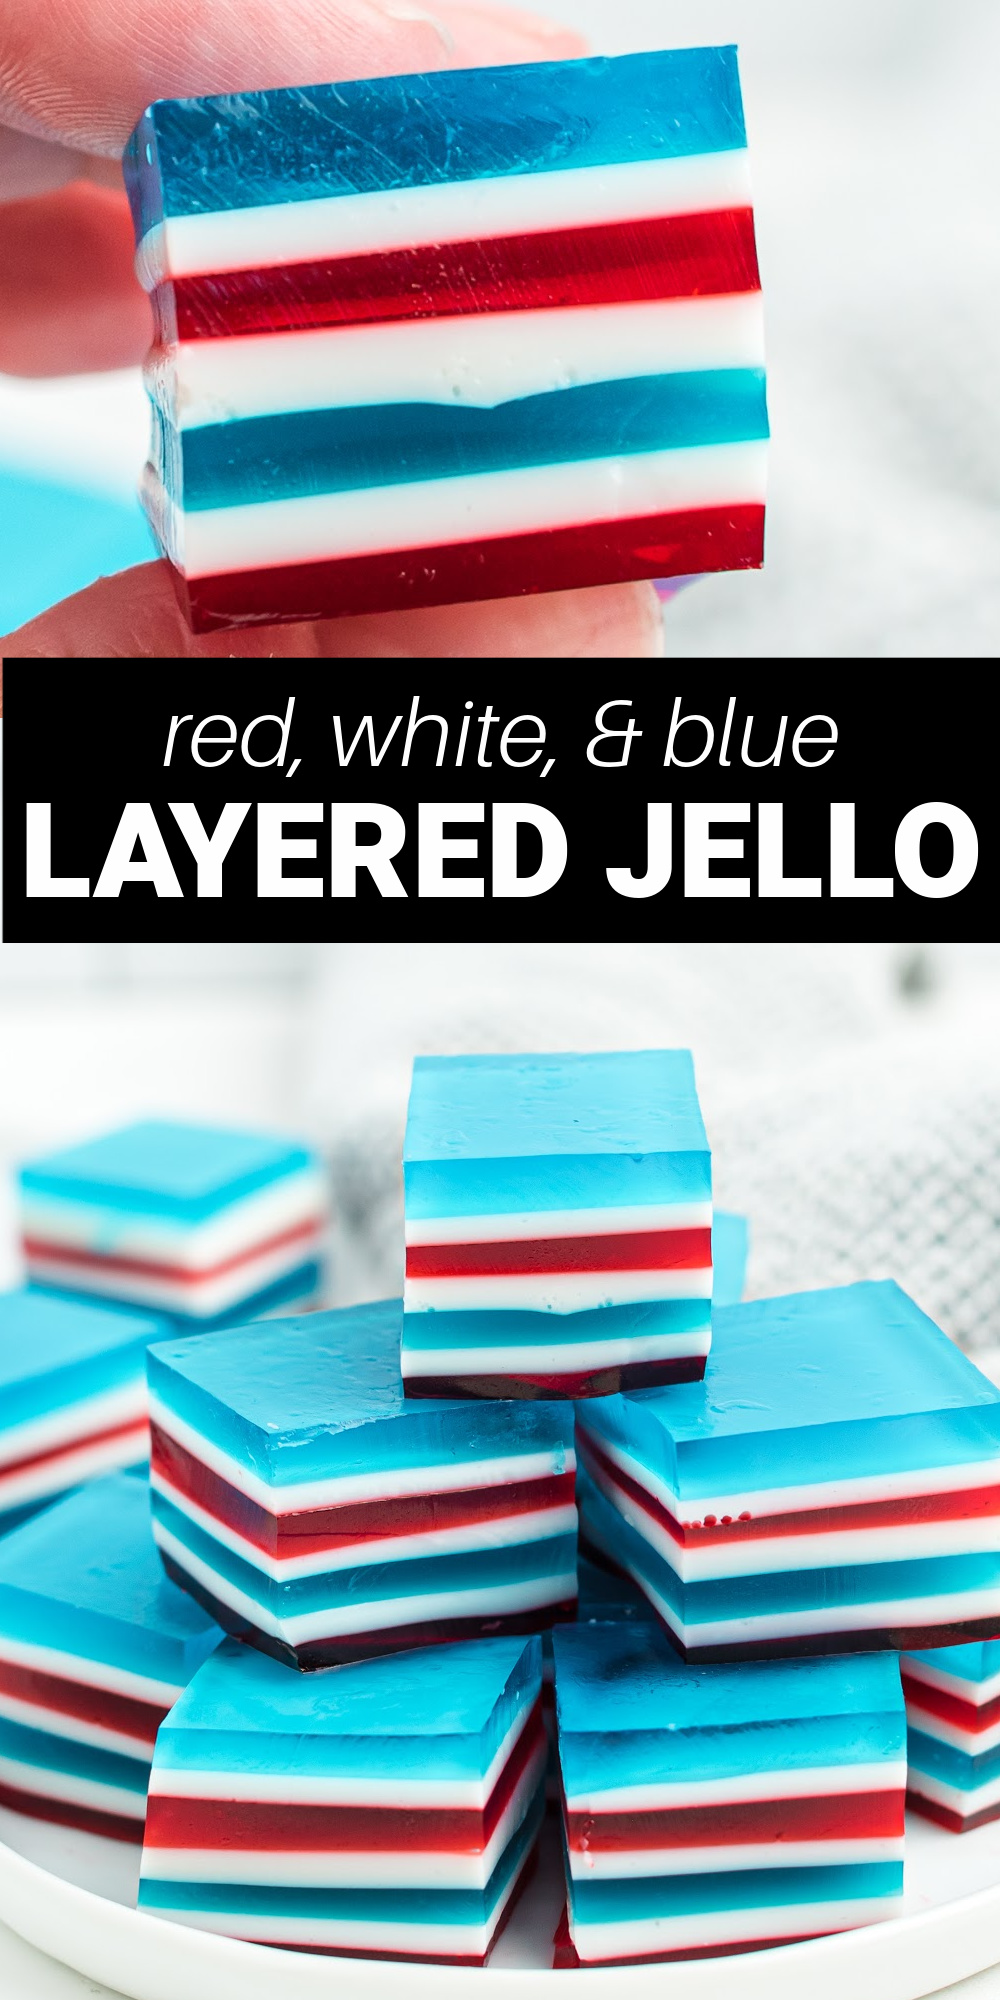 This red, white, and blue layered jello, also called finger jello, is a colorful jello dessert layered with all the patriotic colors. It's a fun treat for Memorial Day, the Fourth of July, and Labor Day.